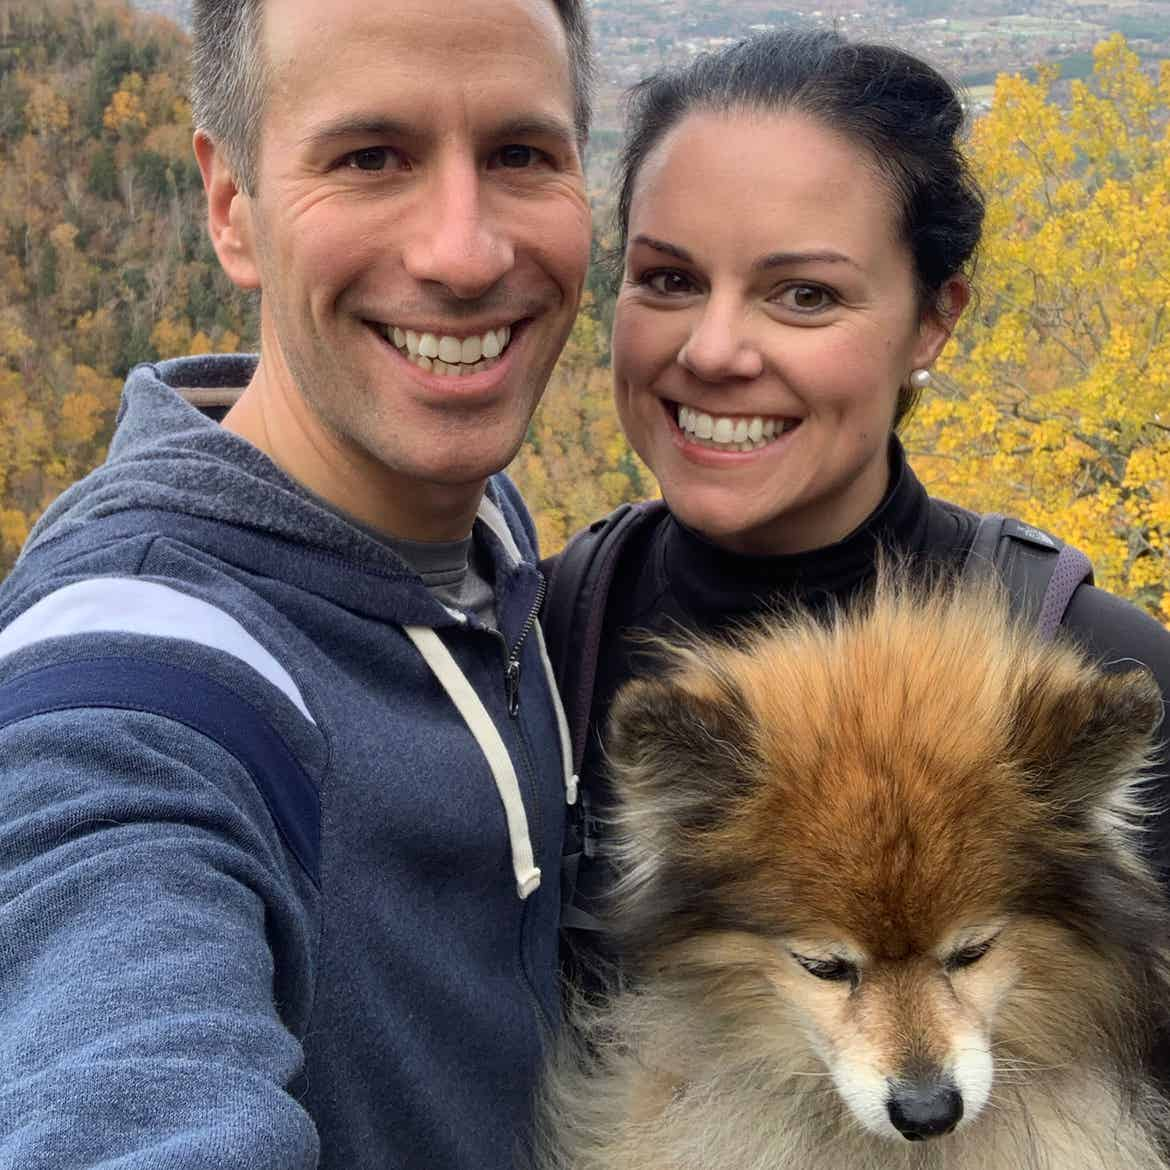 Authors, Lauren Layne and Anthony LeDonne, stand in front of fall foliage with Bailey the Pomeranian.